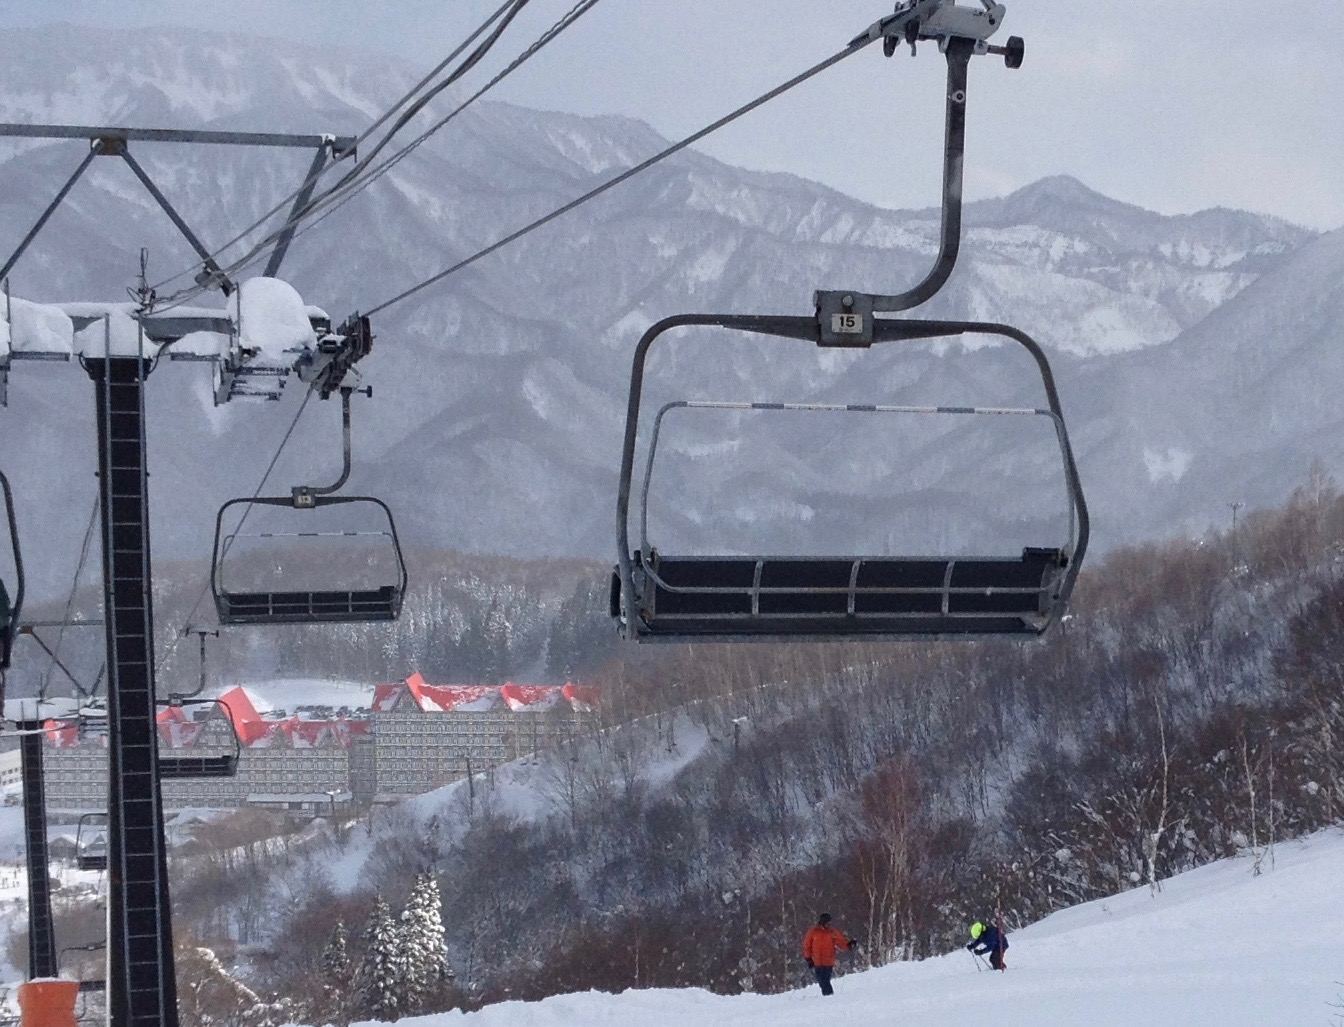 Cortina is one of the ski areas within Hakuba, with the Austrian style hotel below